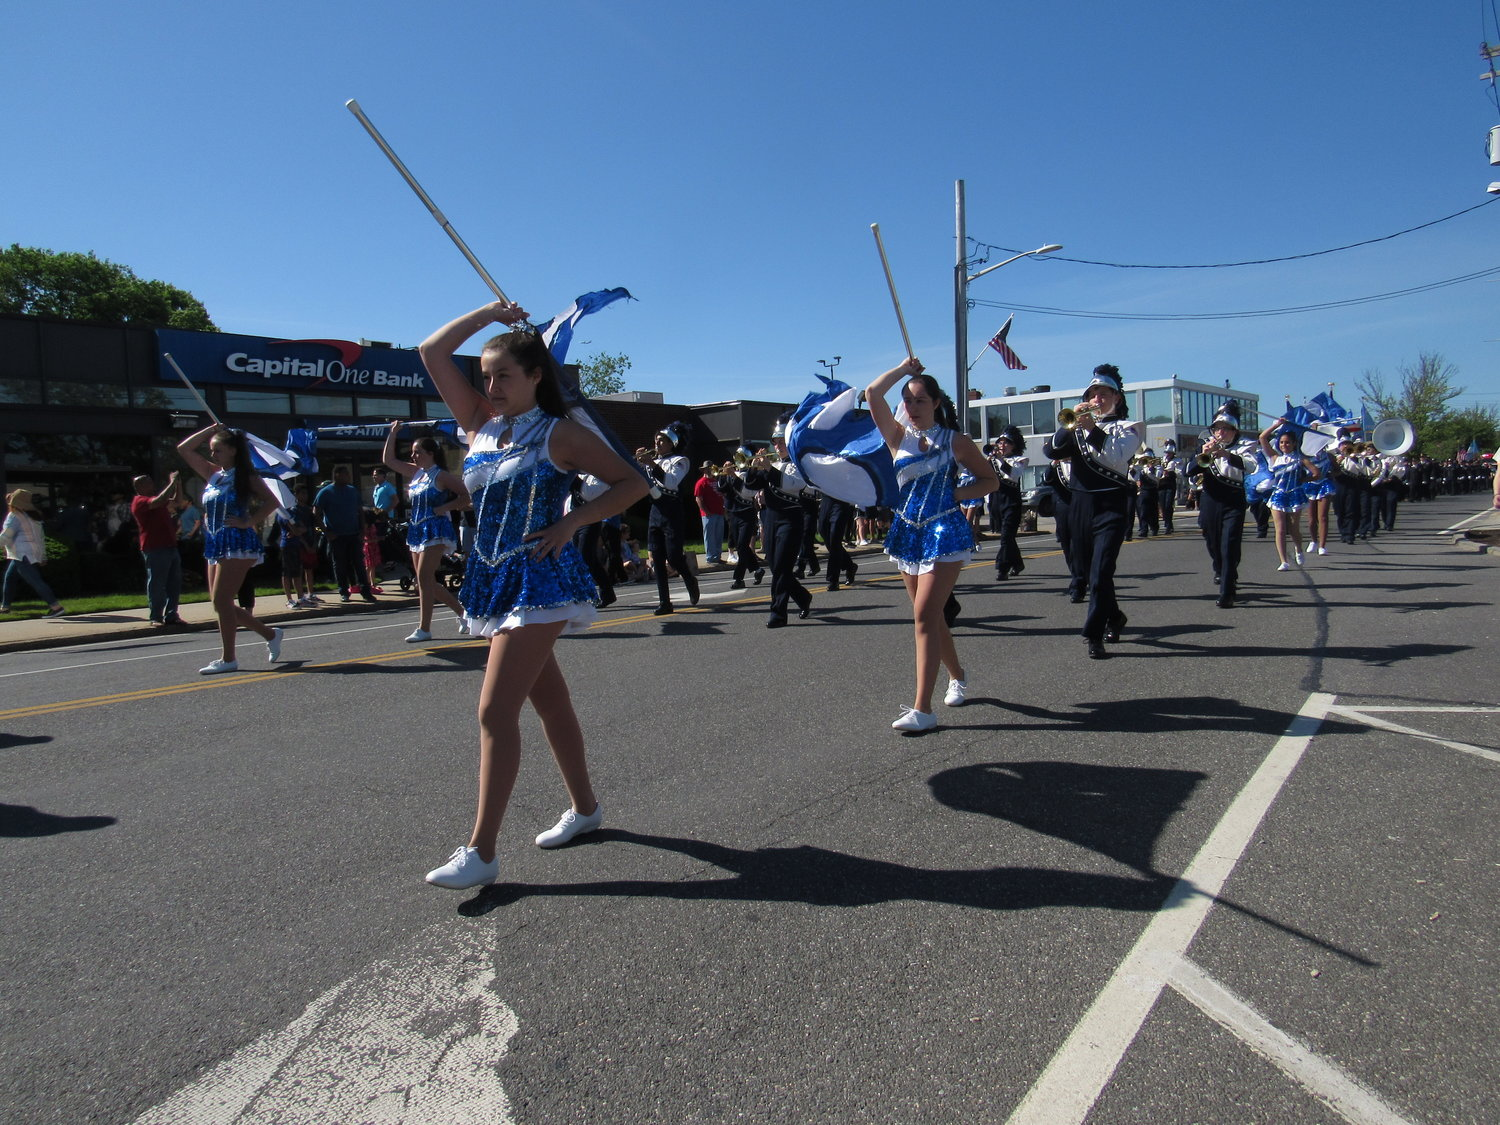 The Hewlett High School marching band performed as the holiday parade proceeded up Broadway.